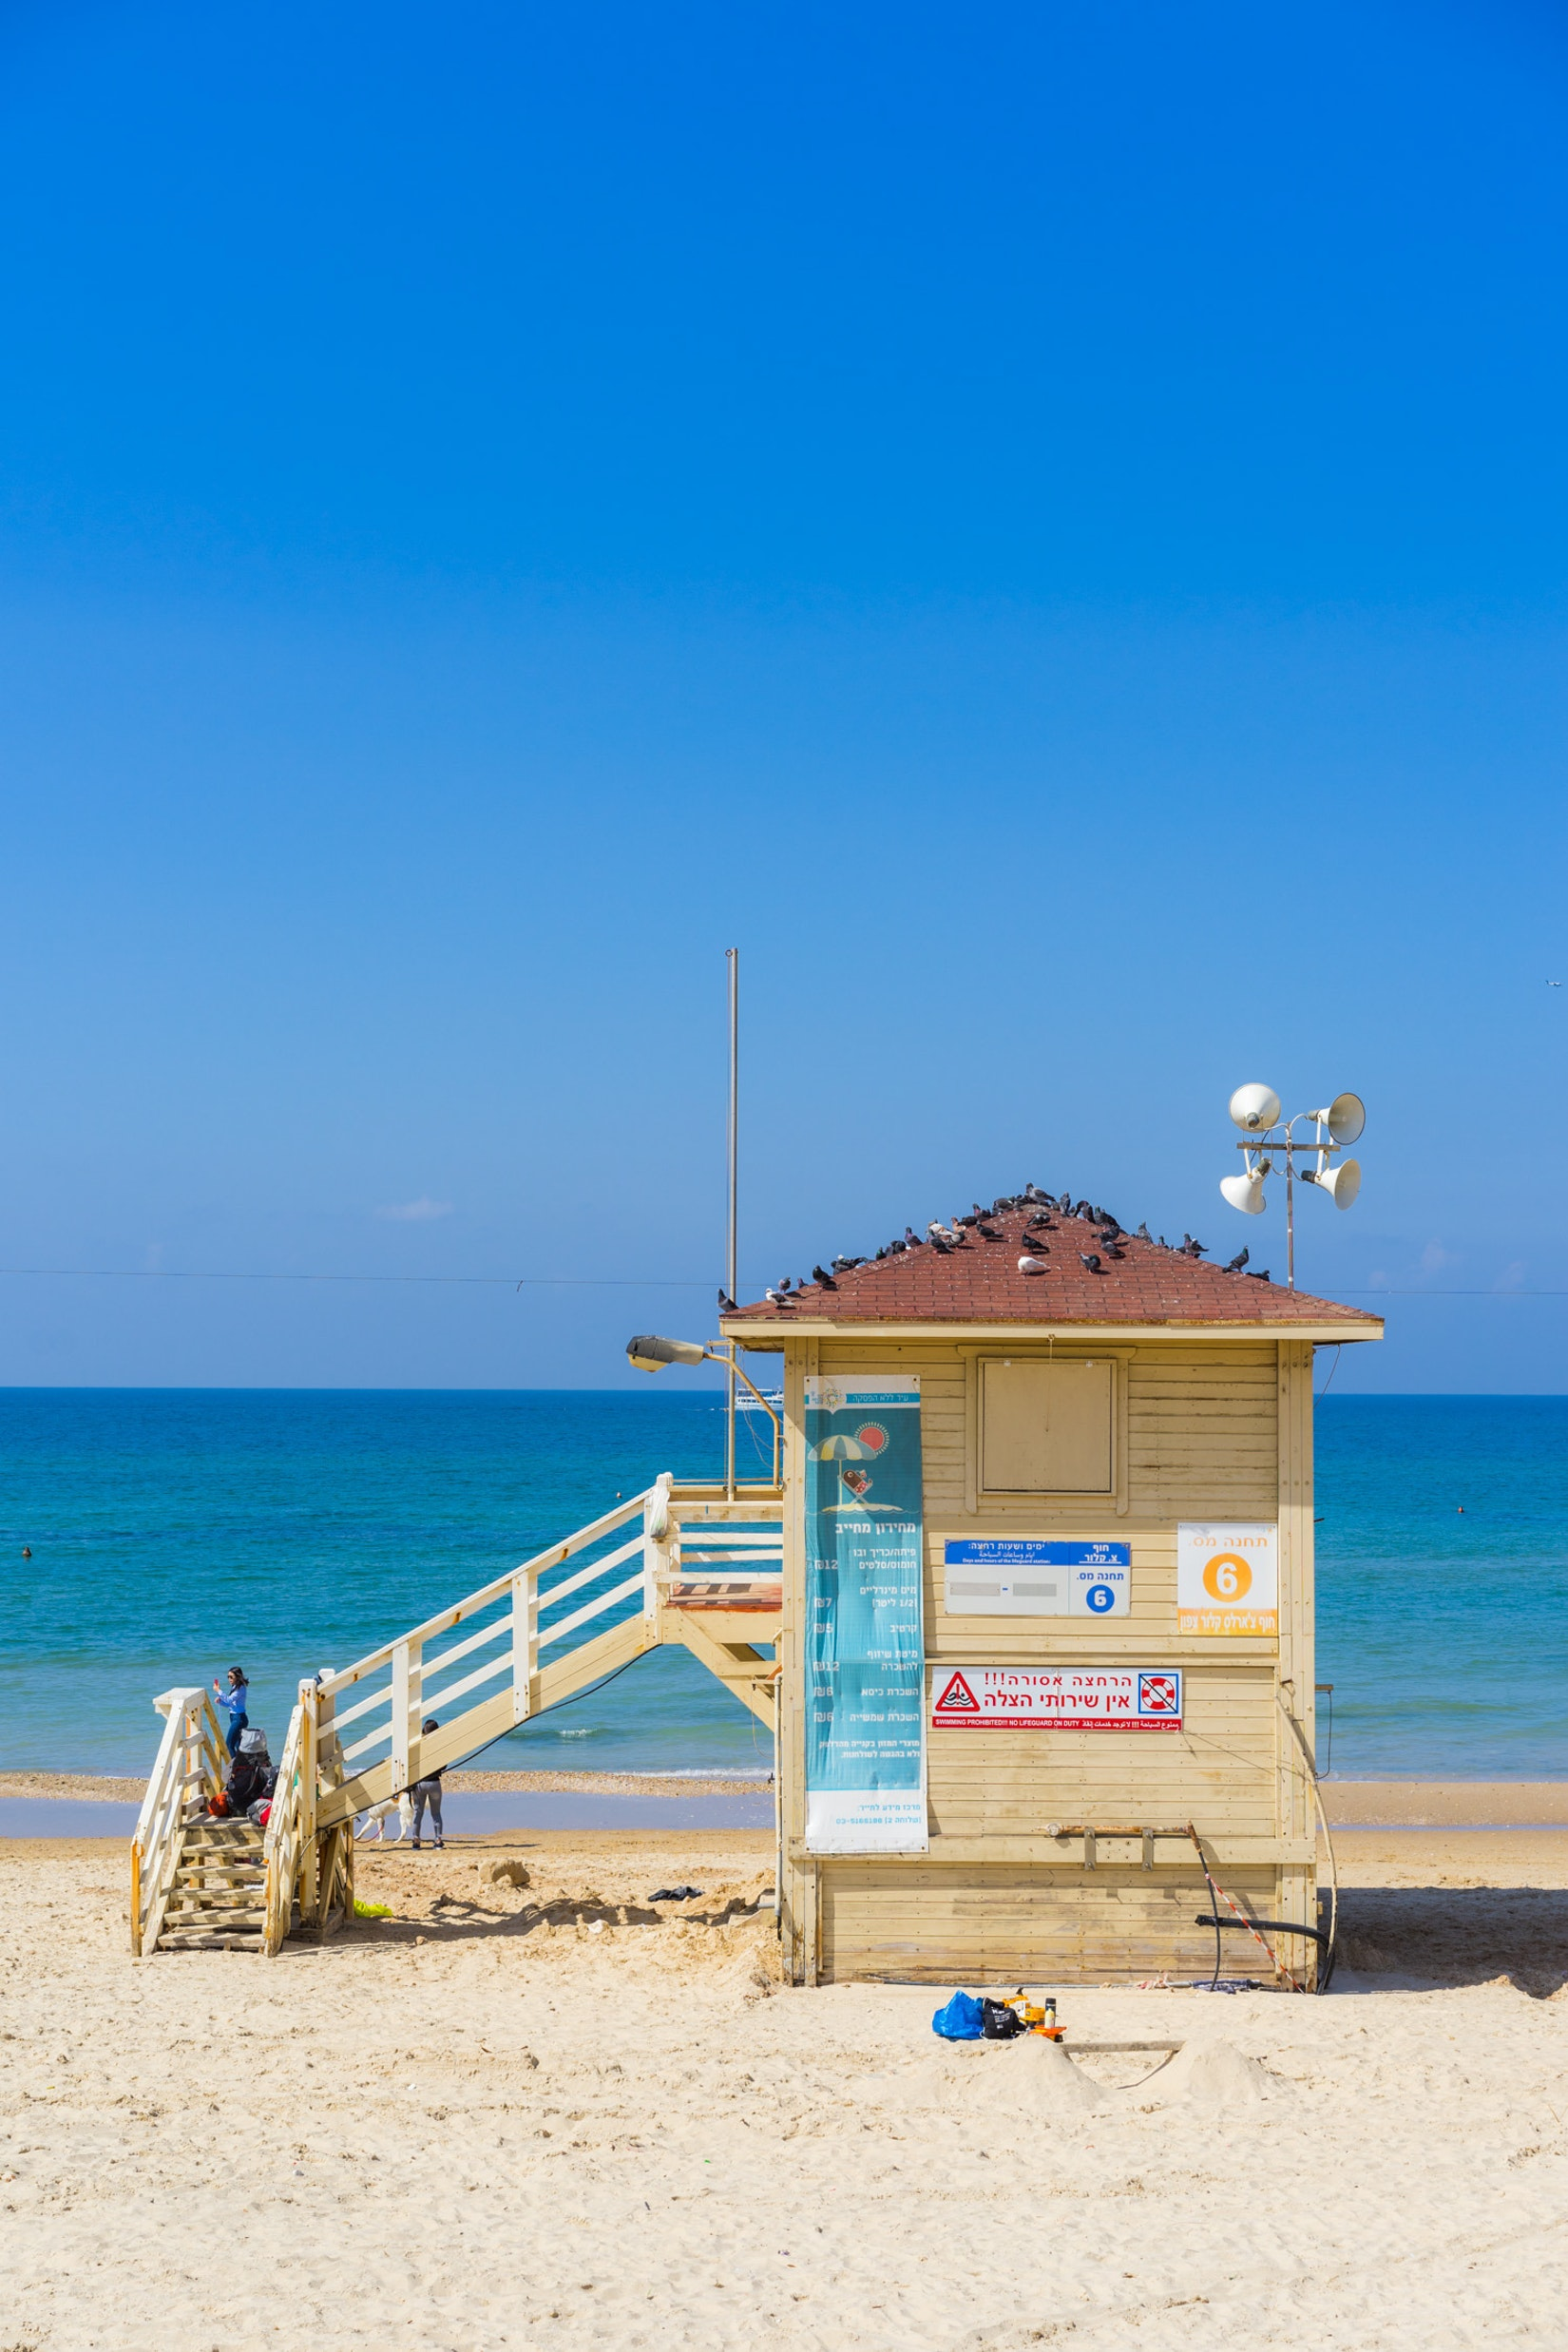 A lifeguard building on the beach in Tel Aviv